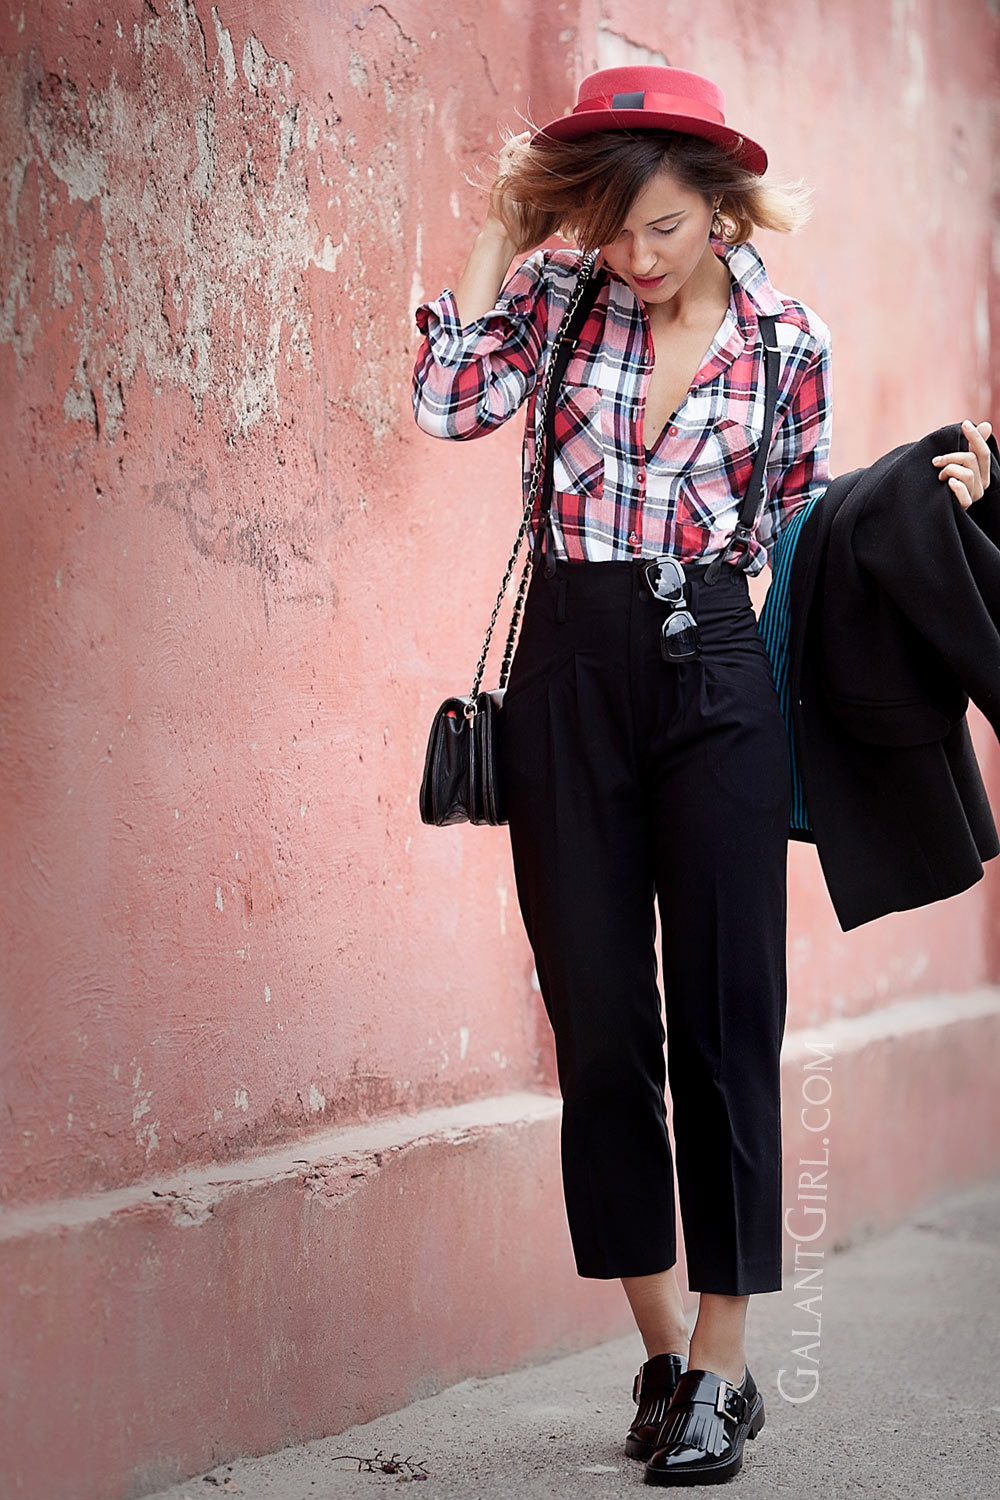 chic-outfit-for-fall-with-braces